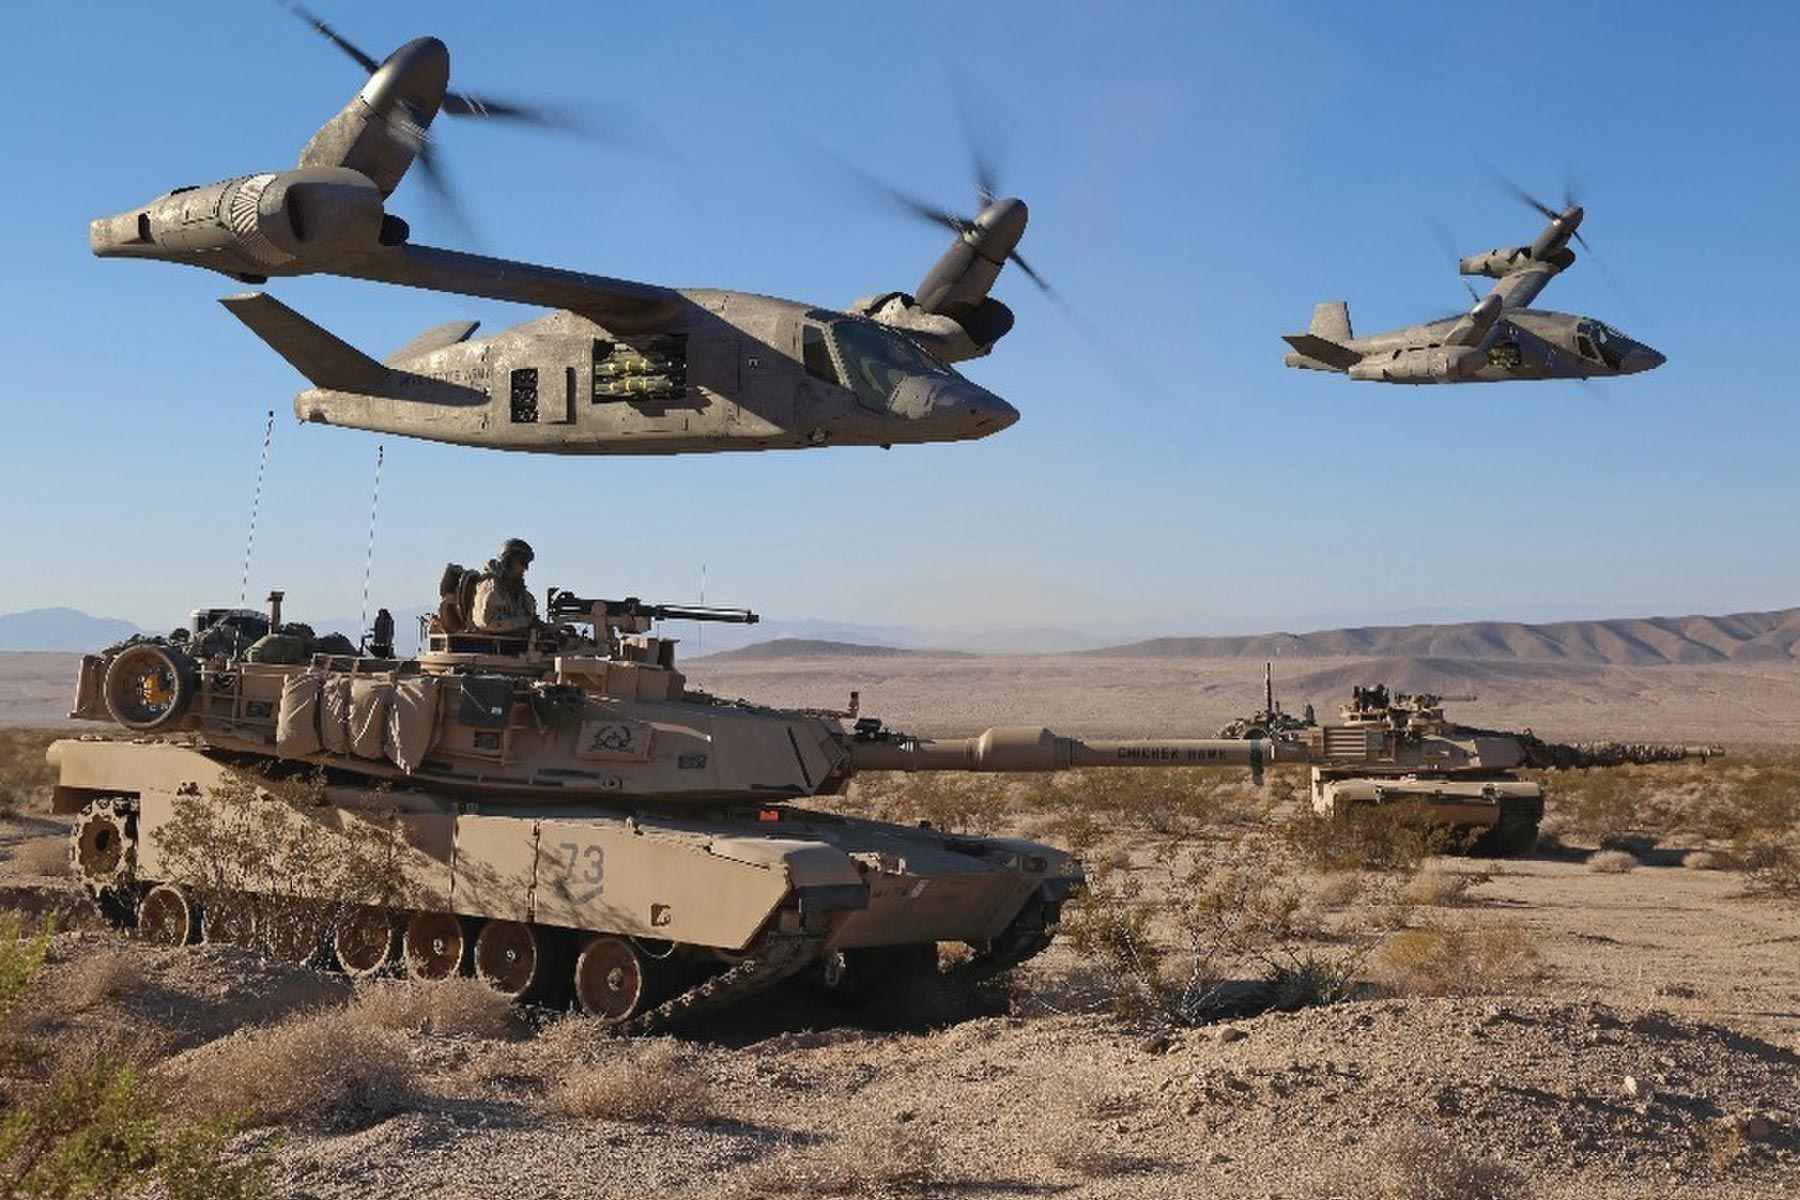 The Army Is Already Building Robot Vehicles, Futuristic Helos into its Battle Simulations